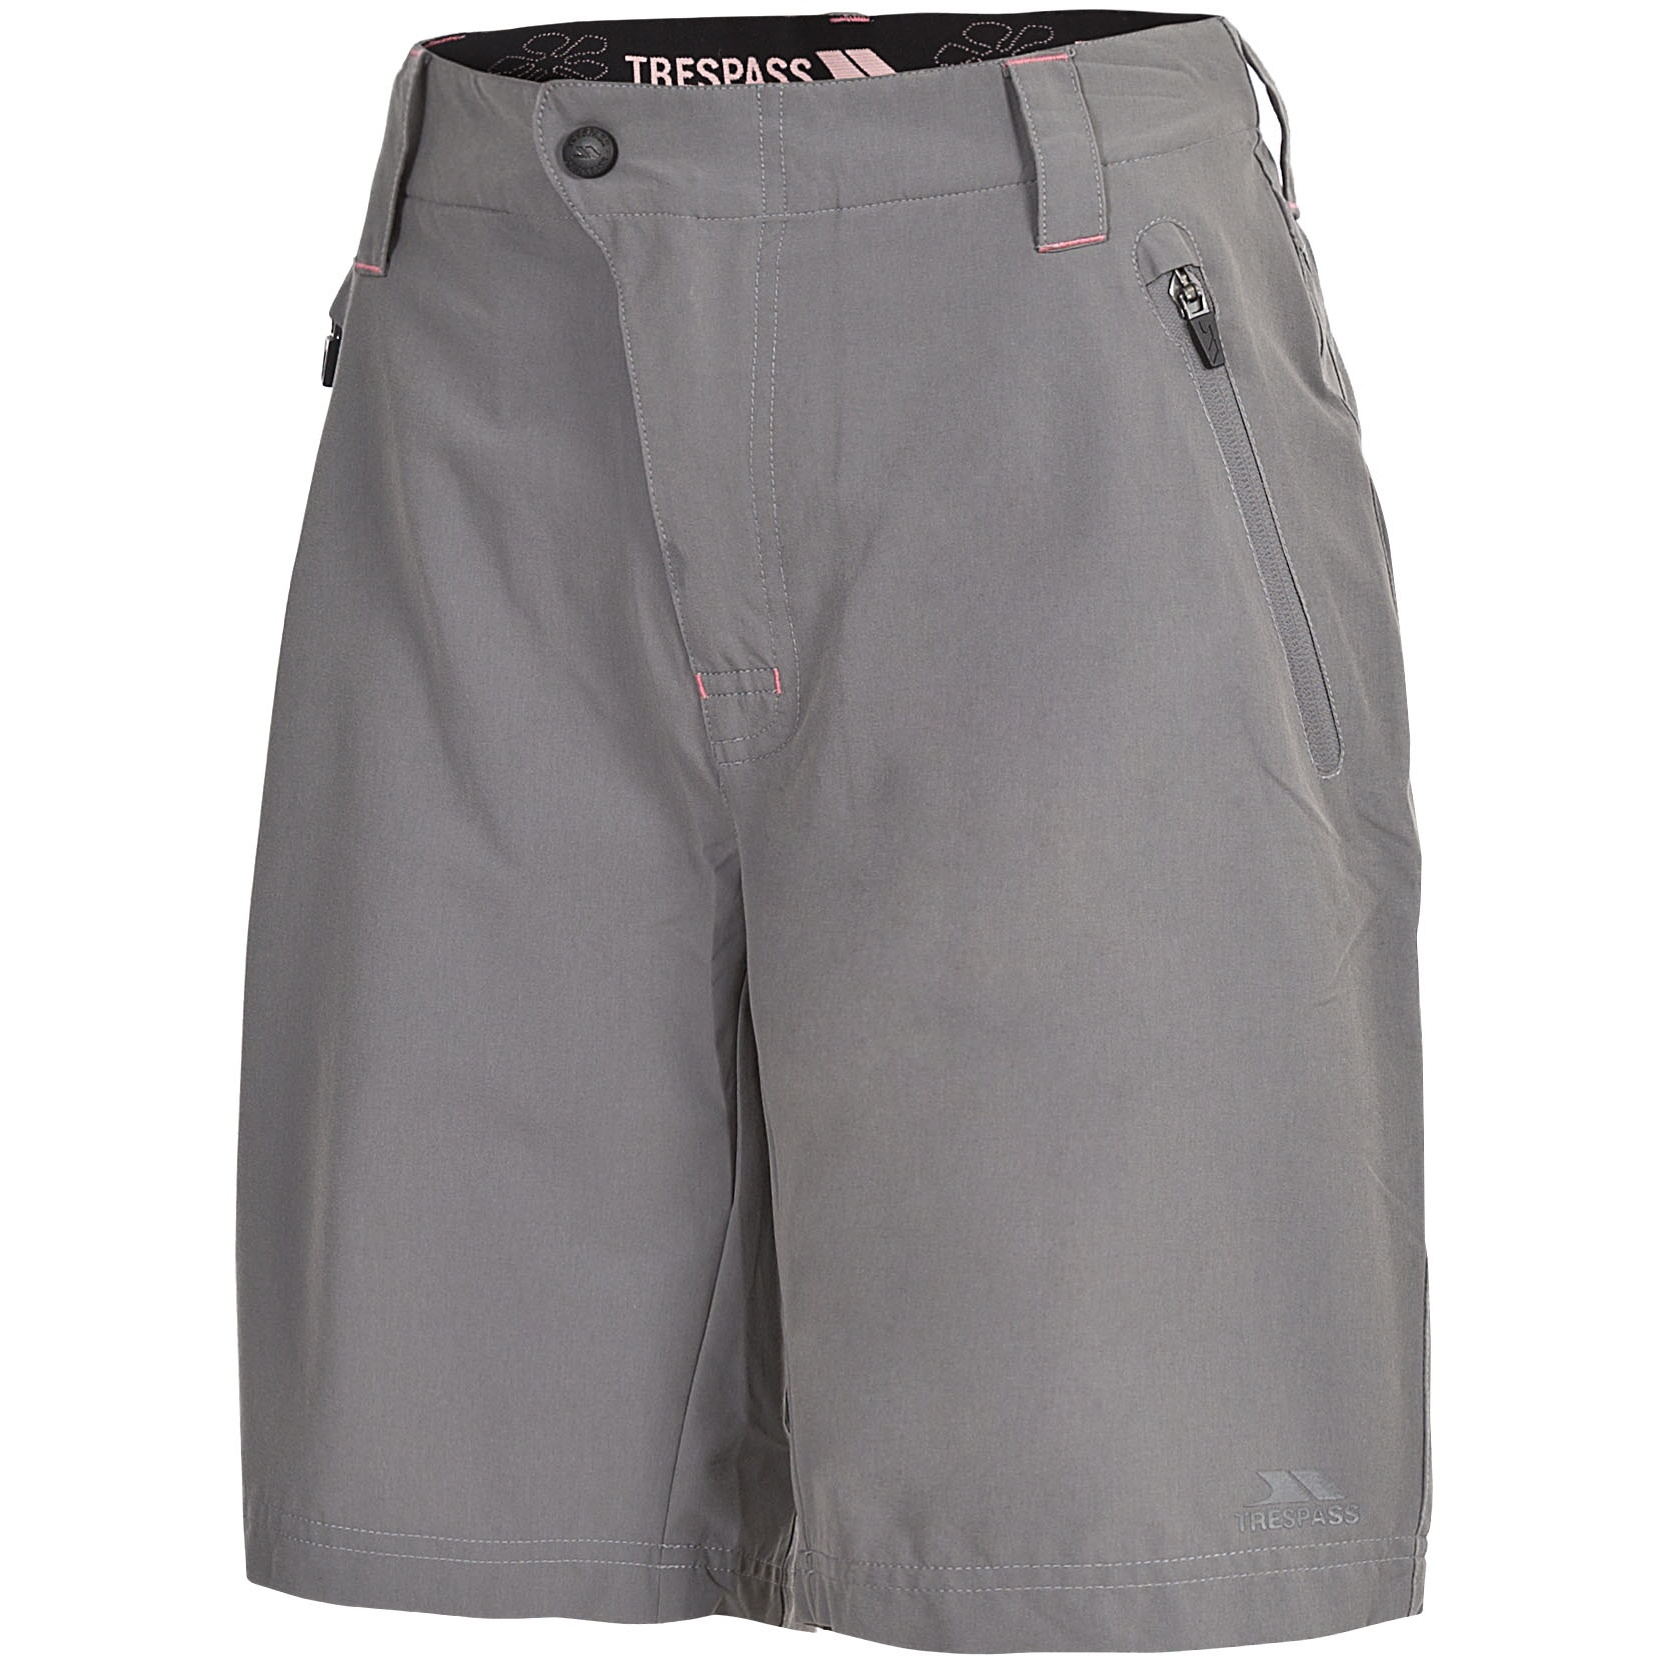 Trespass Womens/Ladies Brooksy Hiking Shorts (S) (Storm Grey)